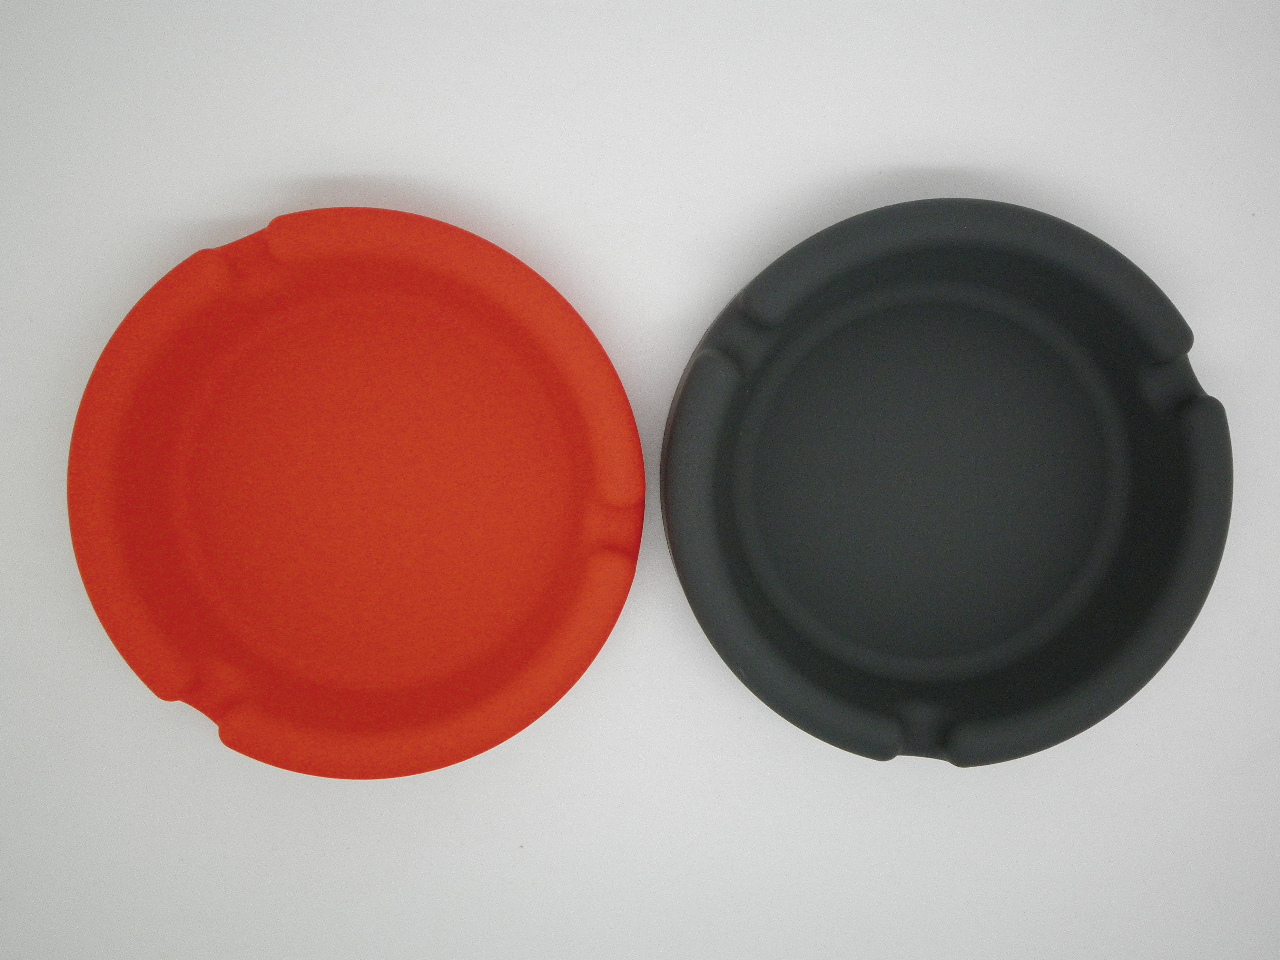 http://www.refinehksilicone.cn/data/images/product/20180417101648_793.JPG